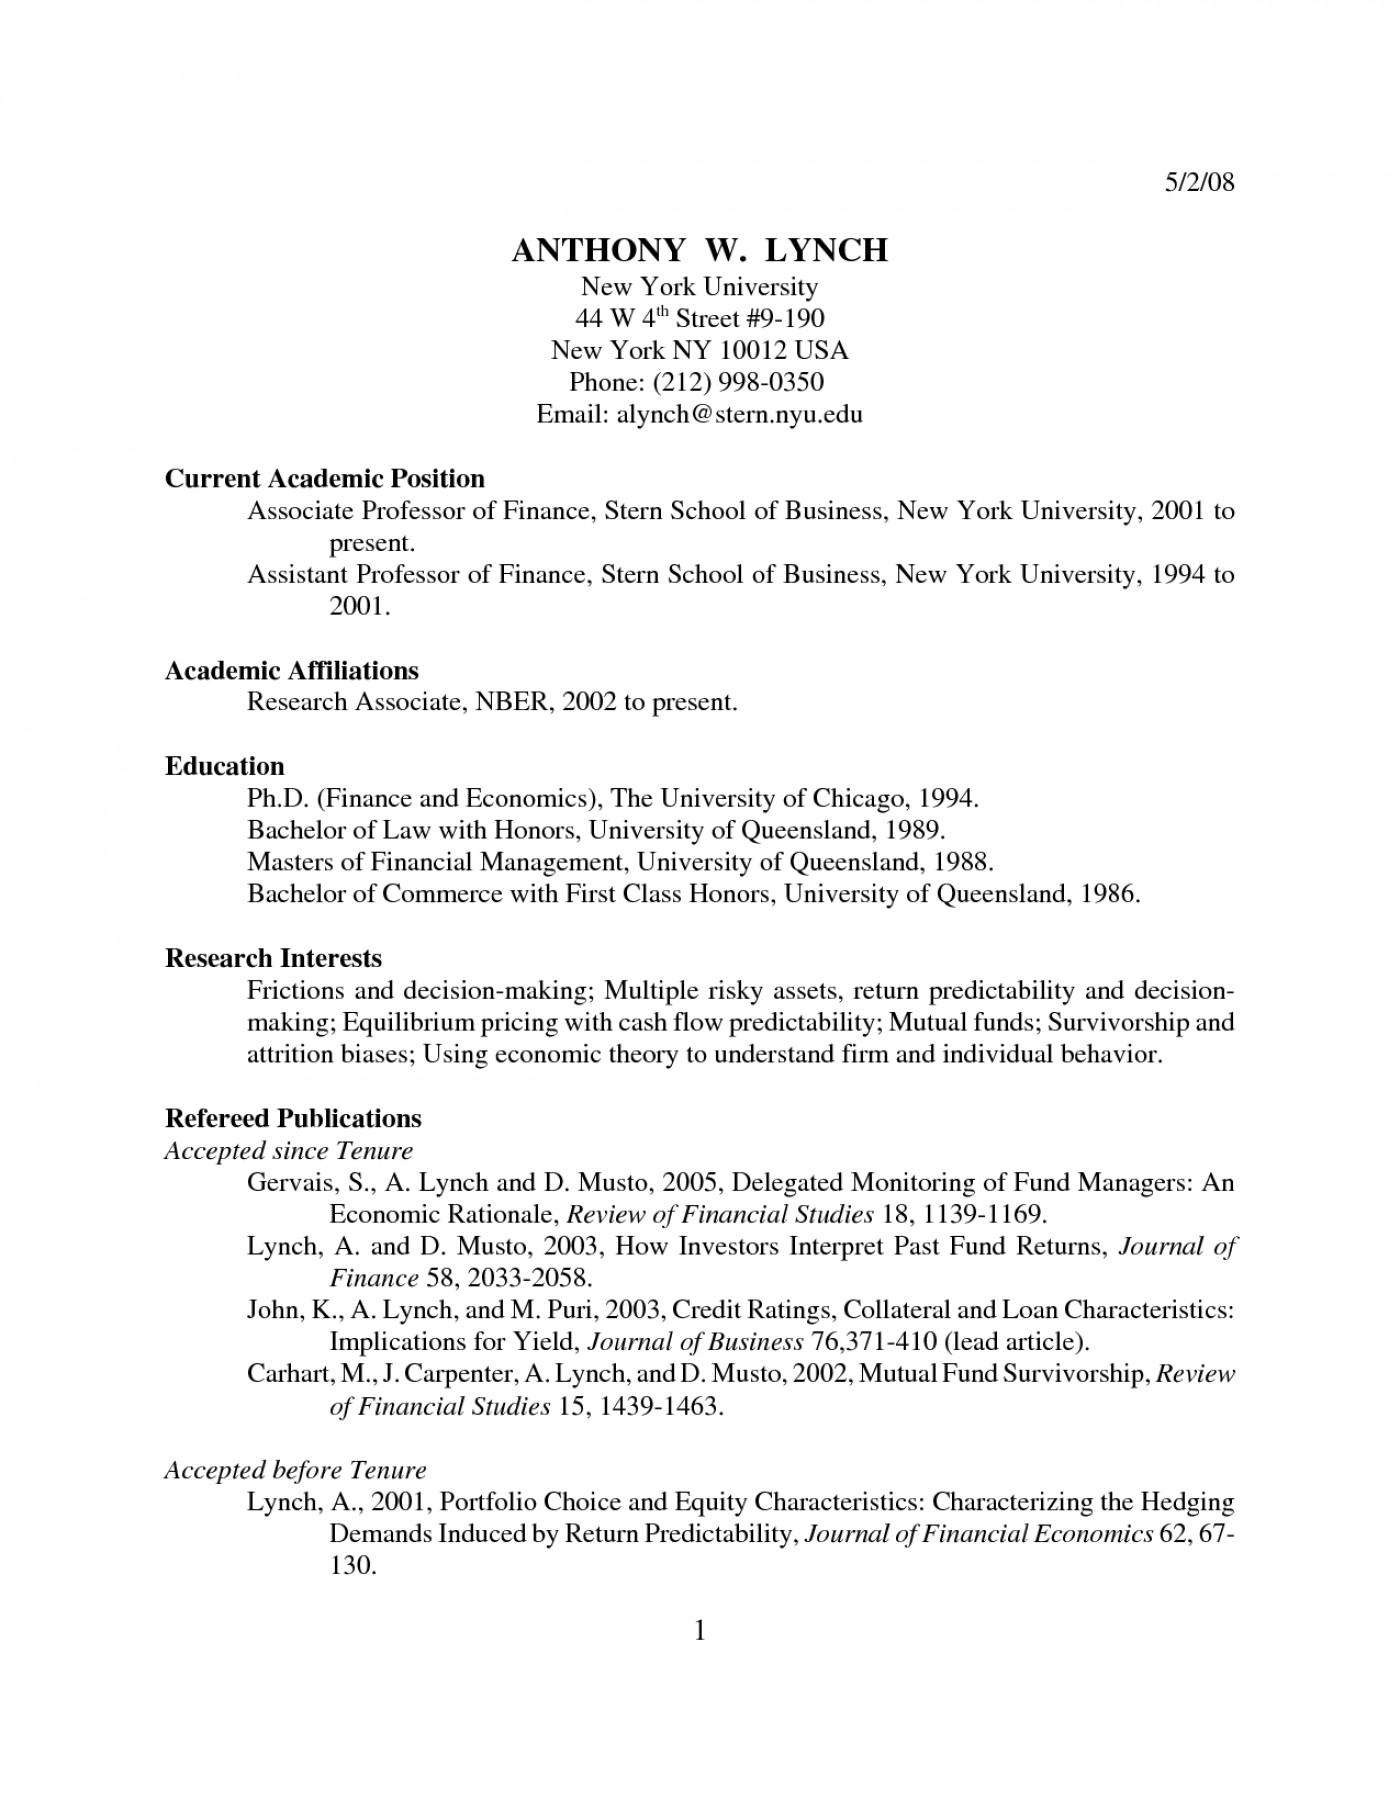 013 Action Research Proposal Template Or And Apa Format